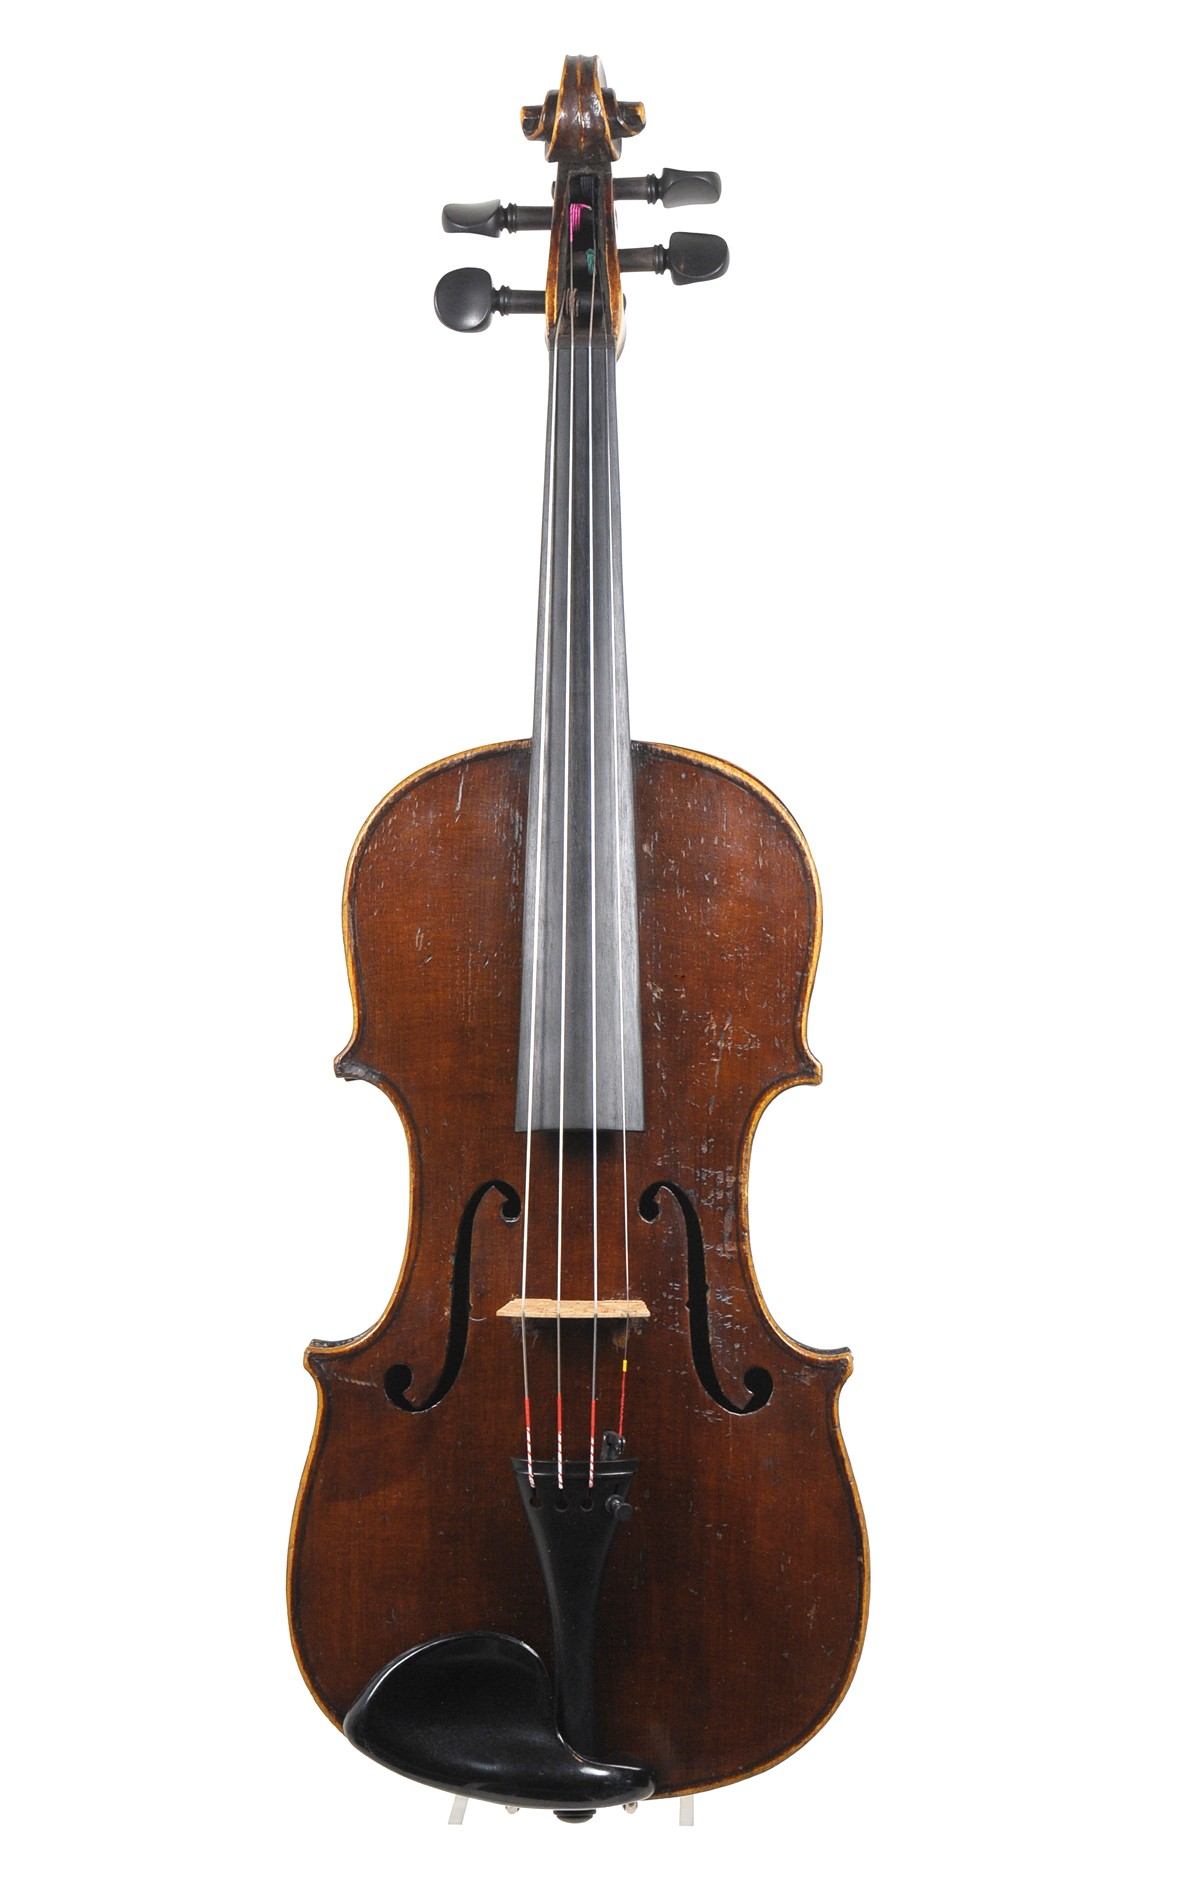 Antique Hopf violin from Klingenthal, Saxony, approx. 1880